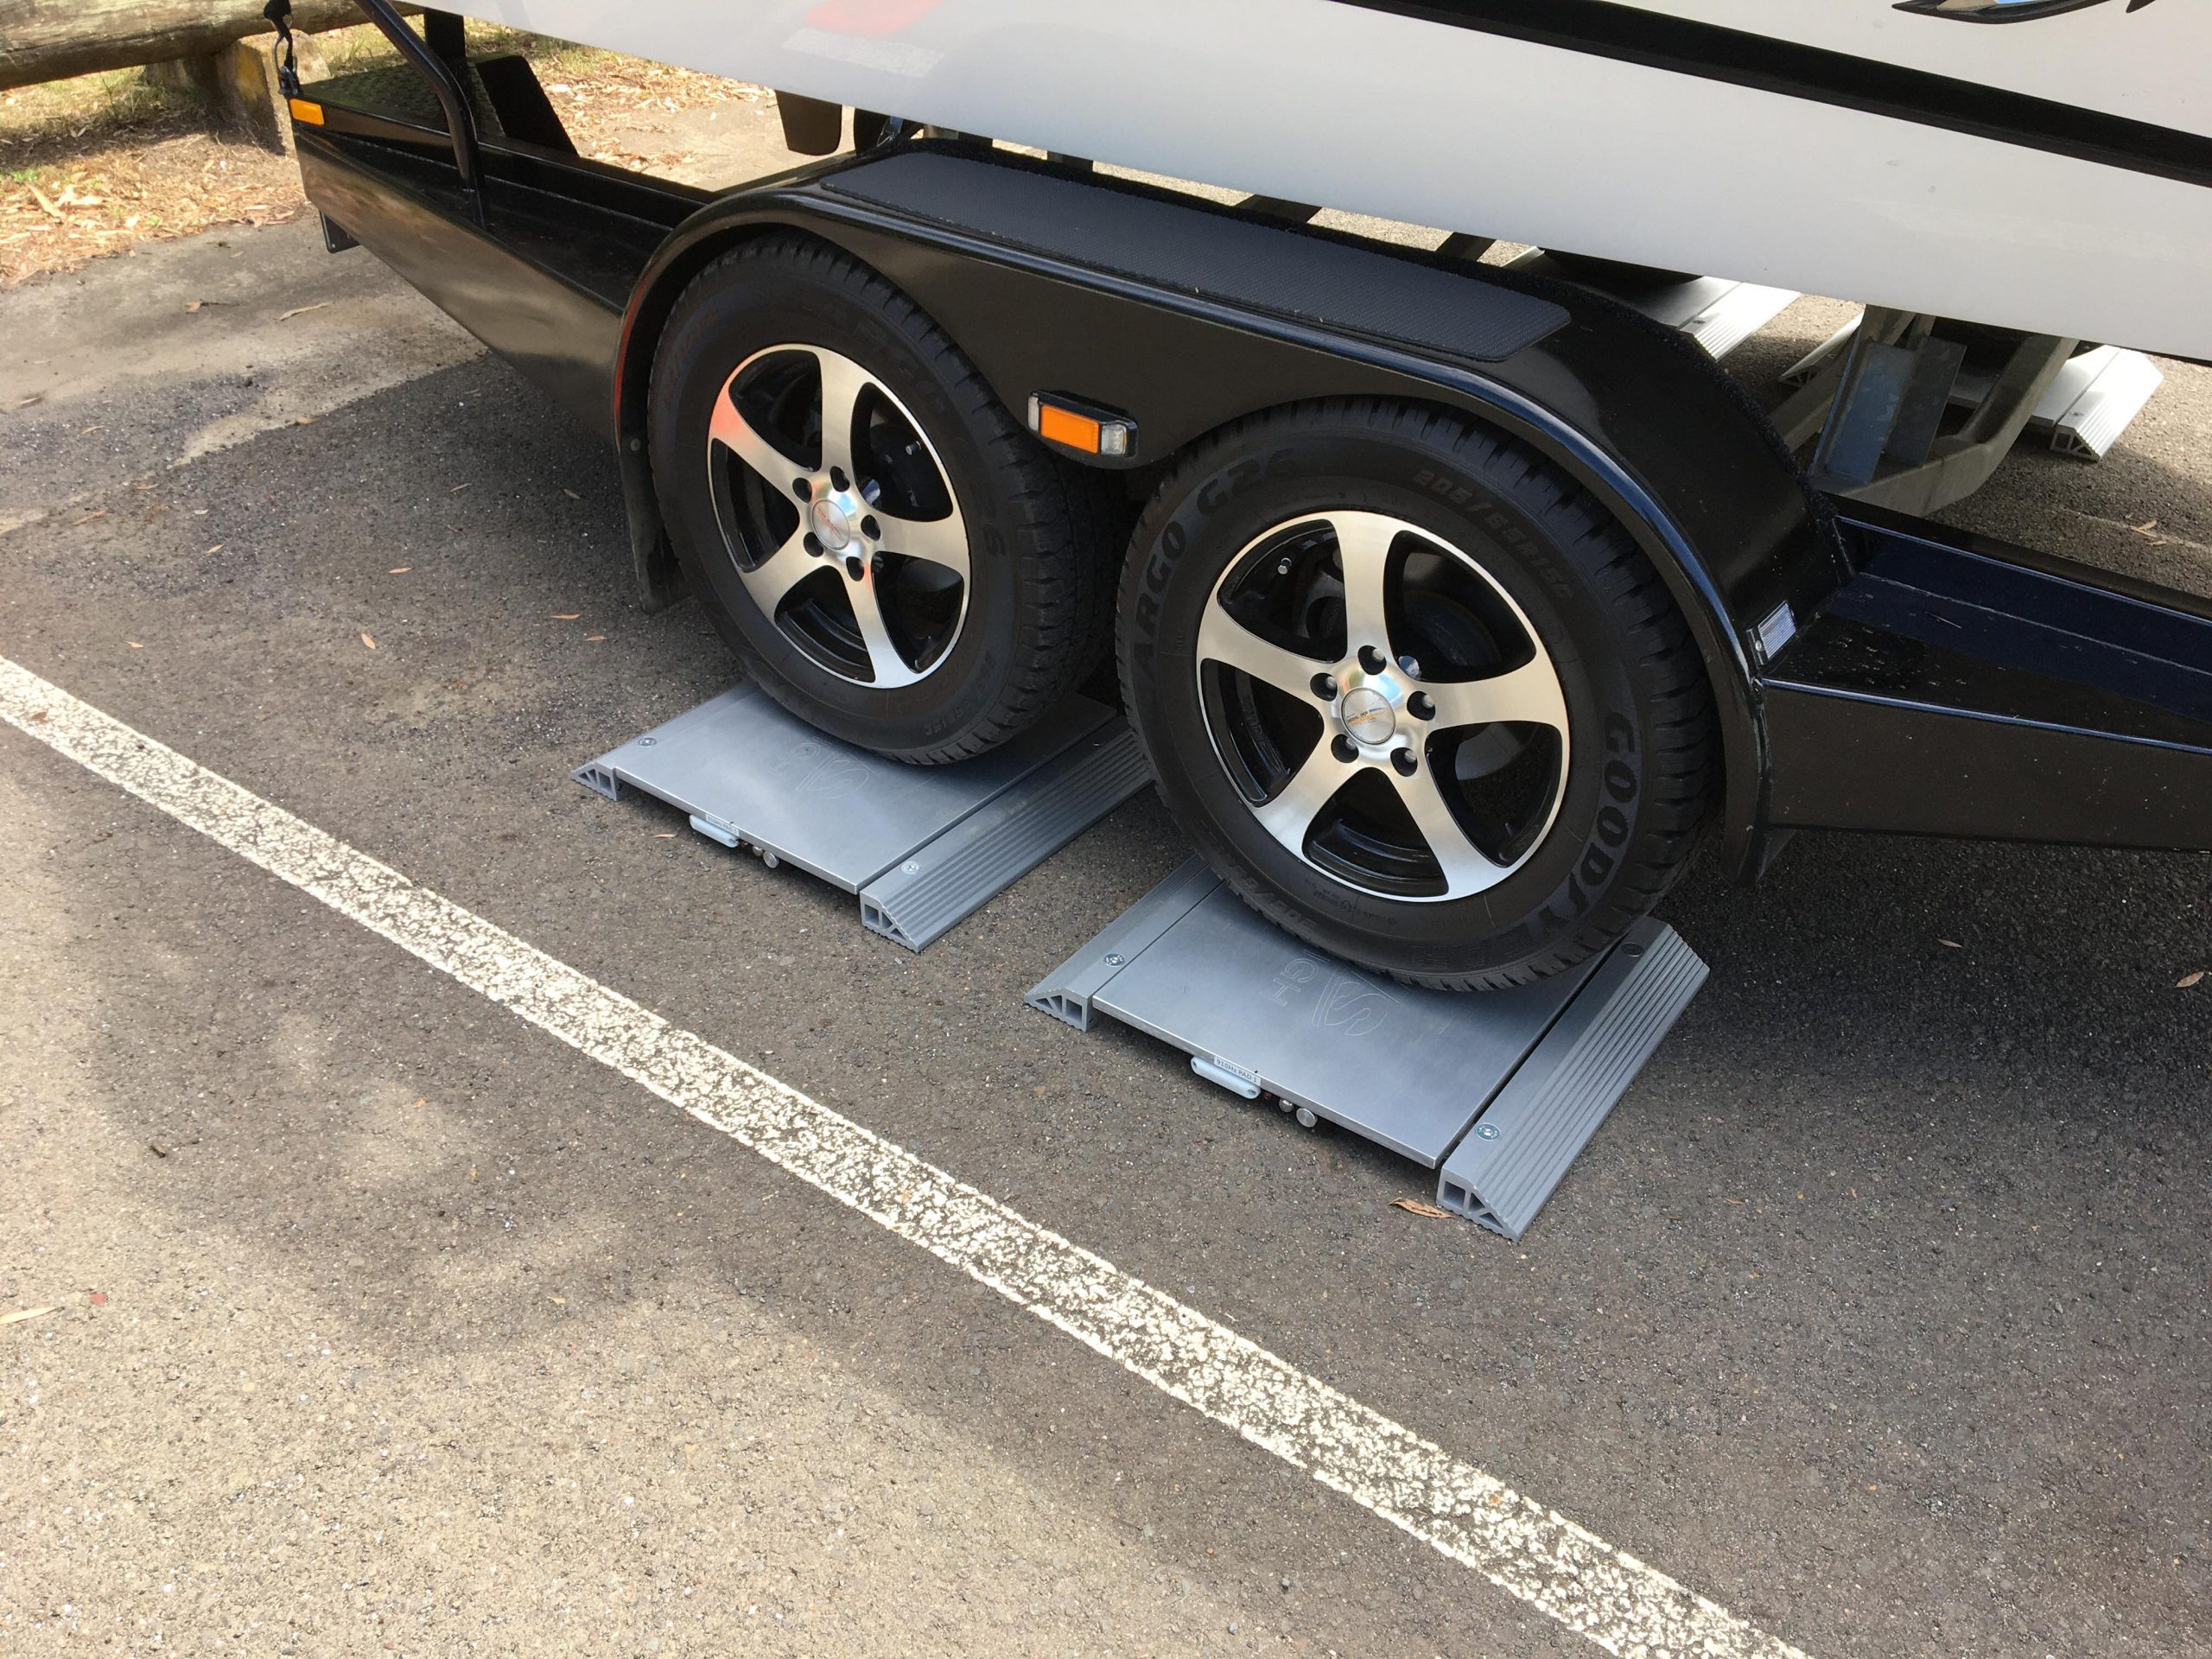 mobile weighing service